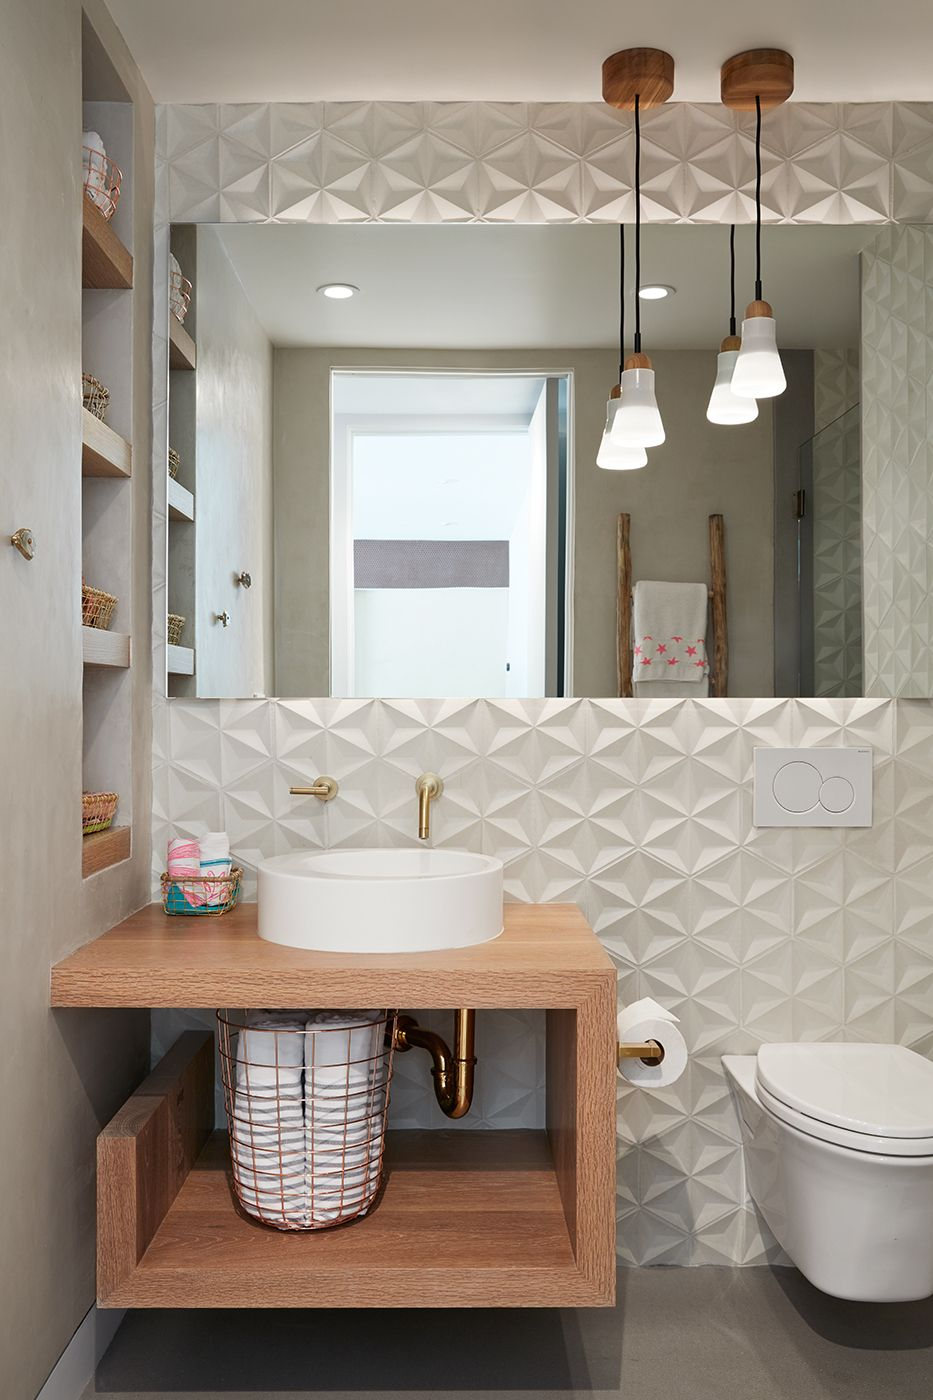 Modern Family Bathroom Ideas Part - 39: Photo 8 Of 9 In Thoughtful Design Details Warm Up A Modern Familyu2026